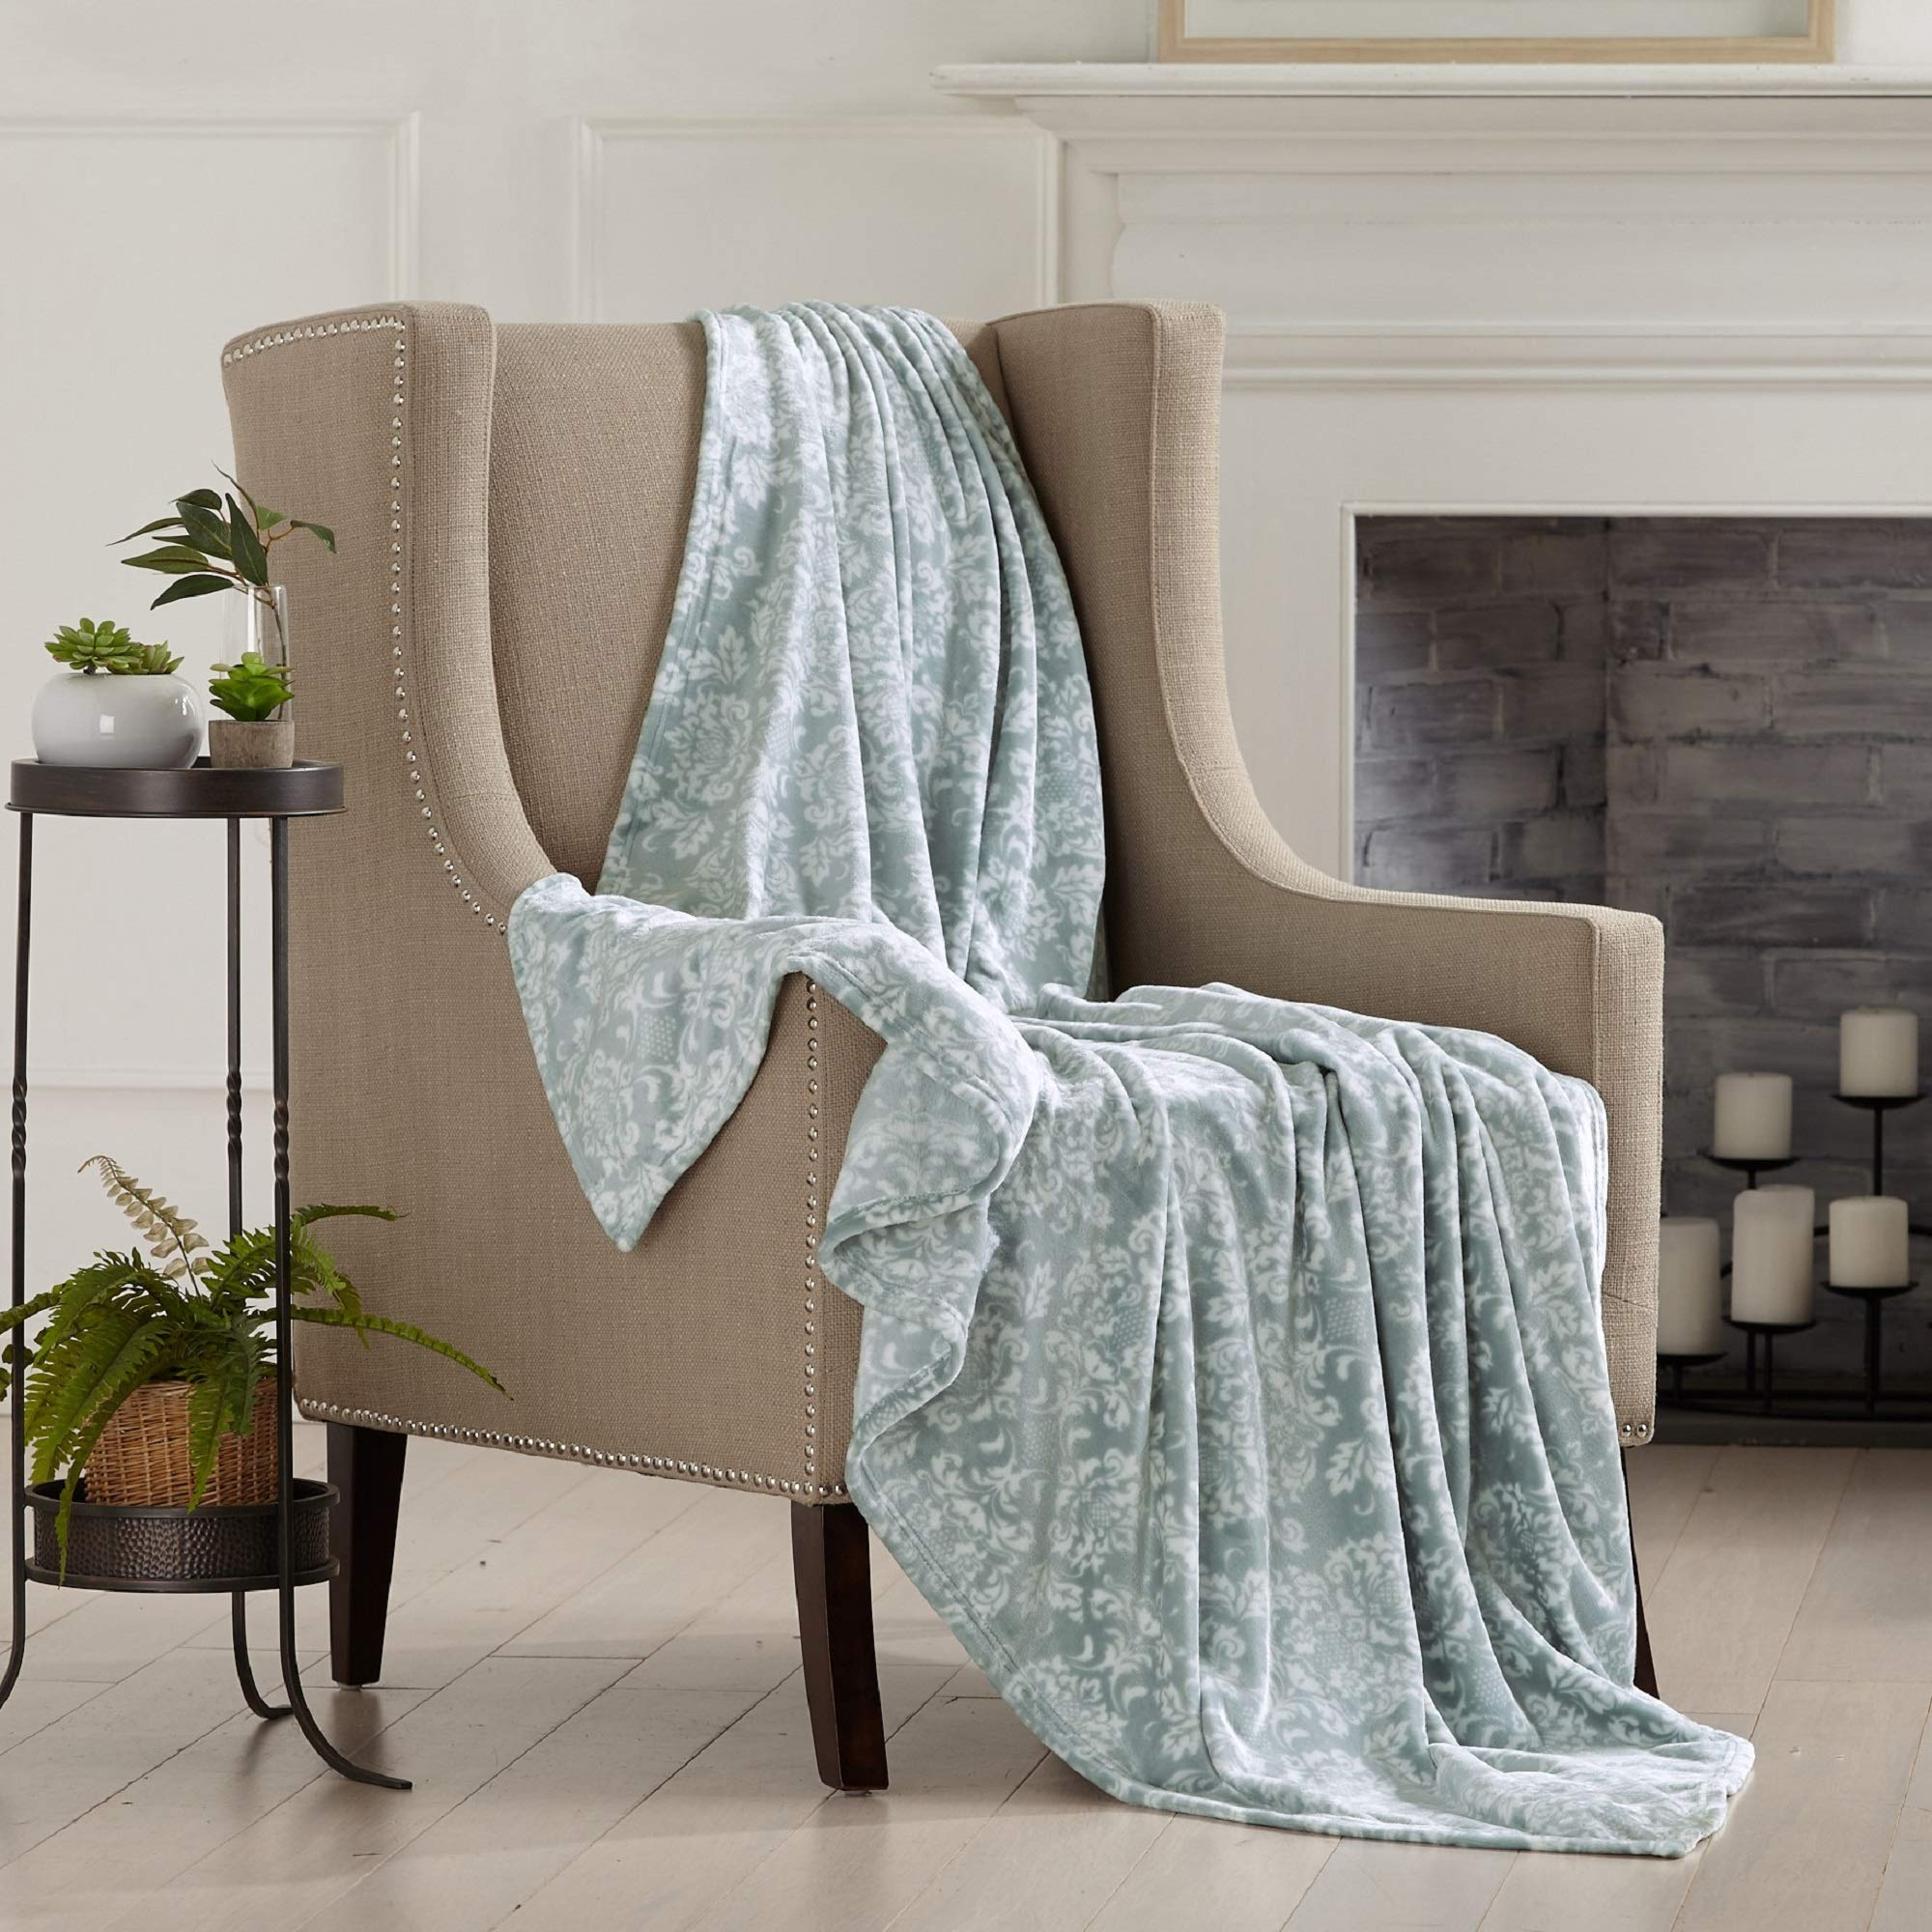 Home Fashion Designs Velvet Plush Soft Throw Blanket Grey Mist